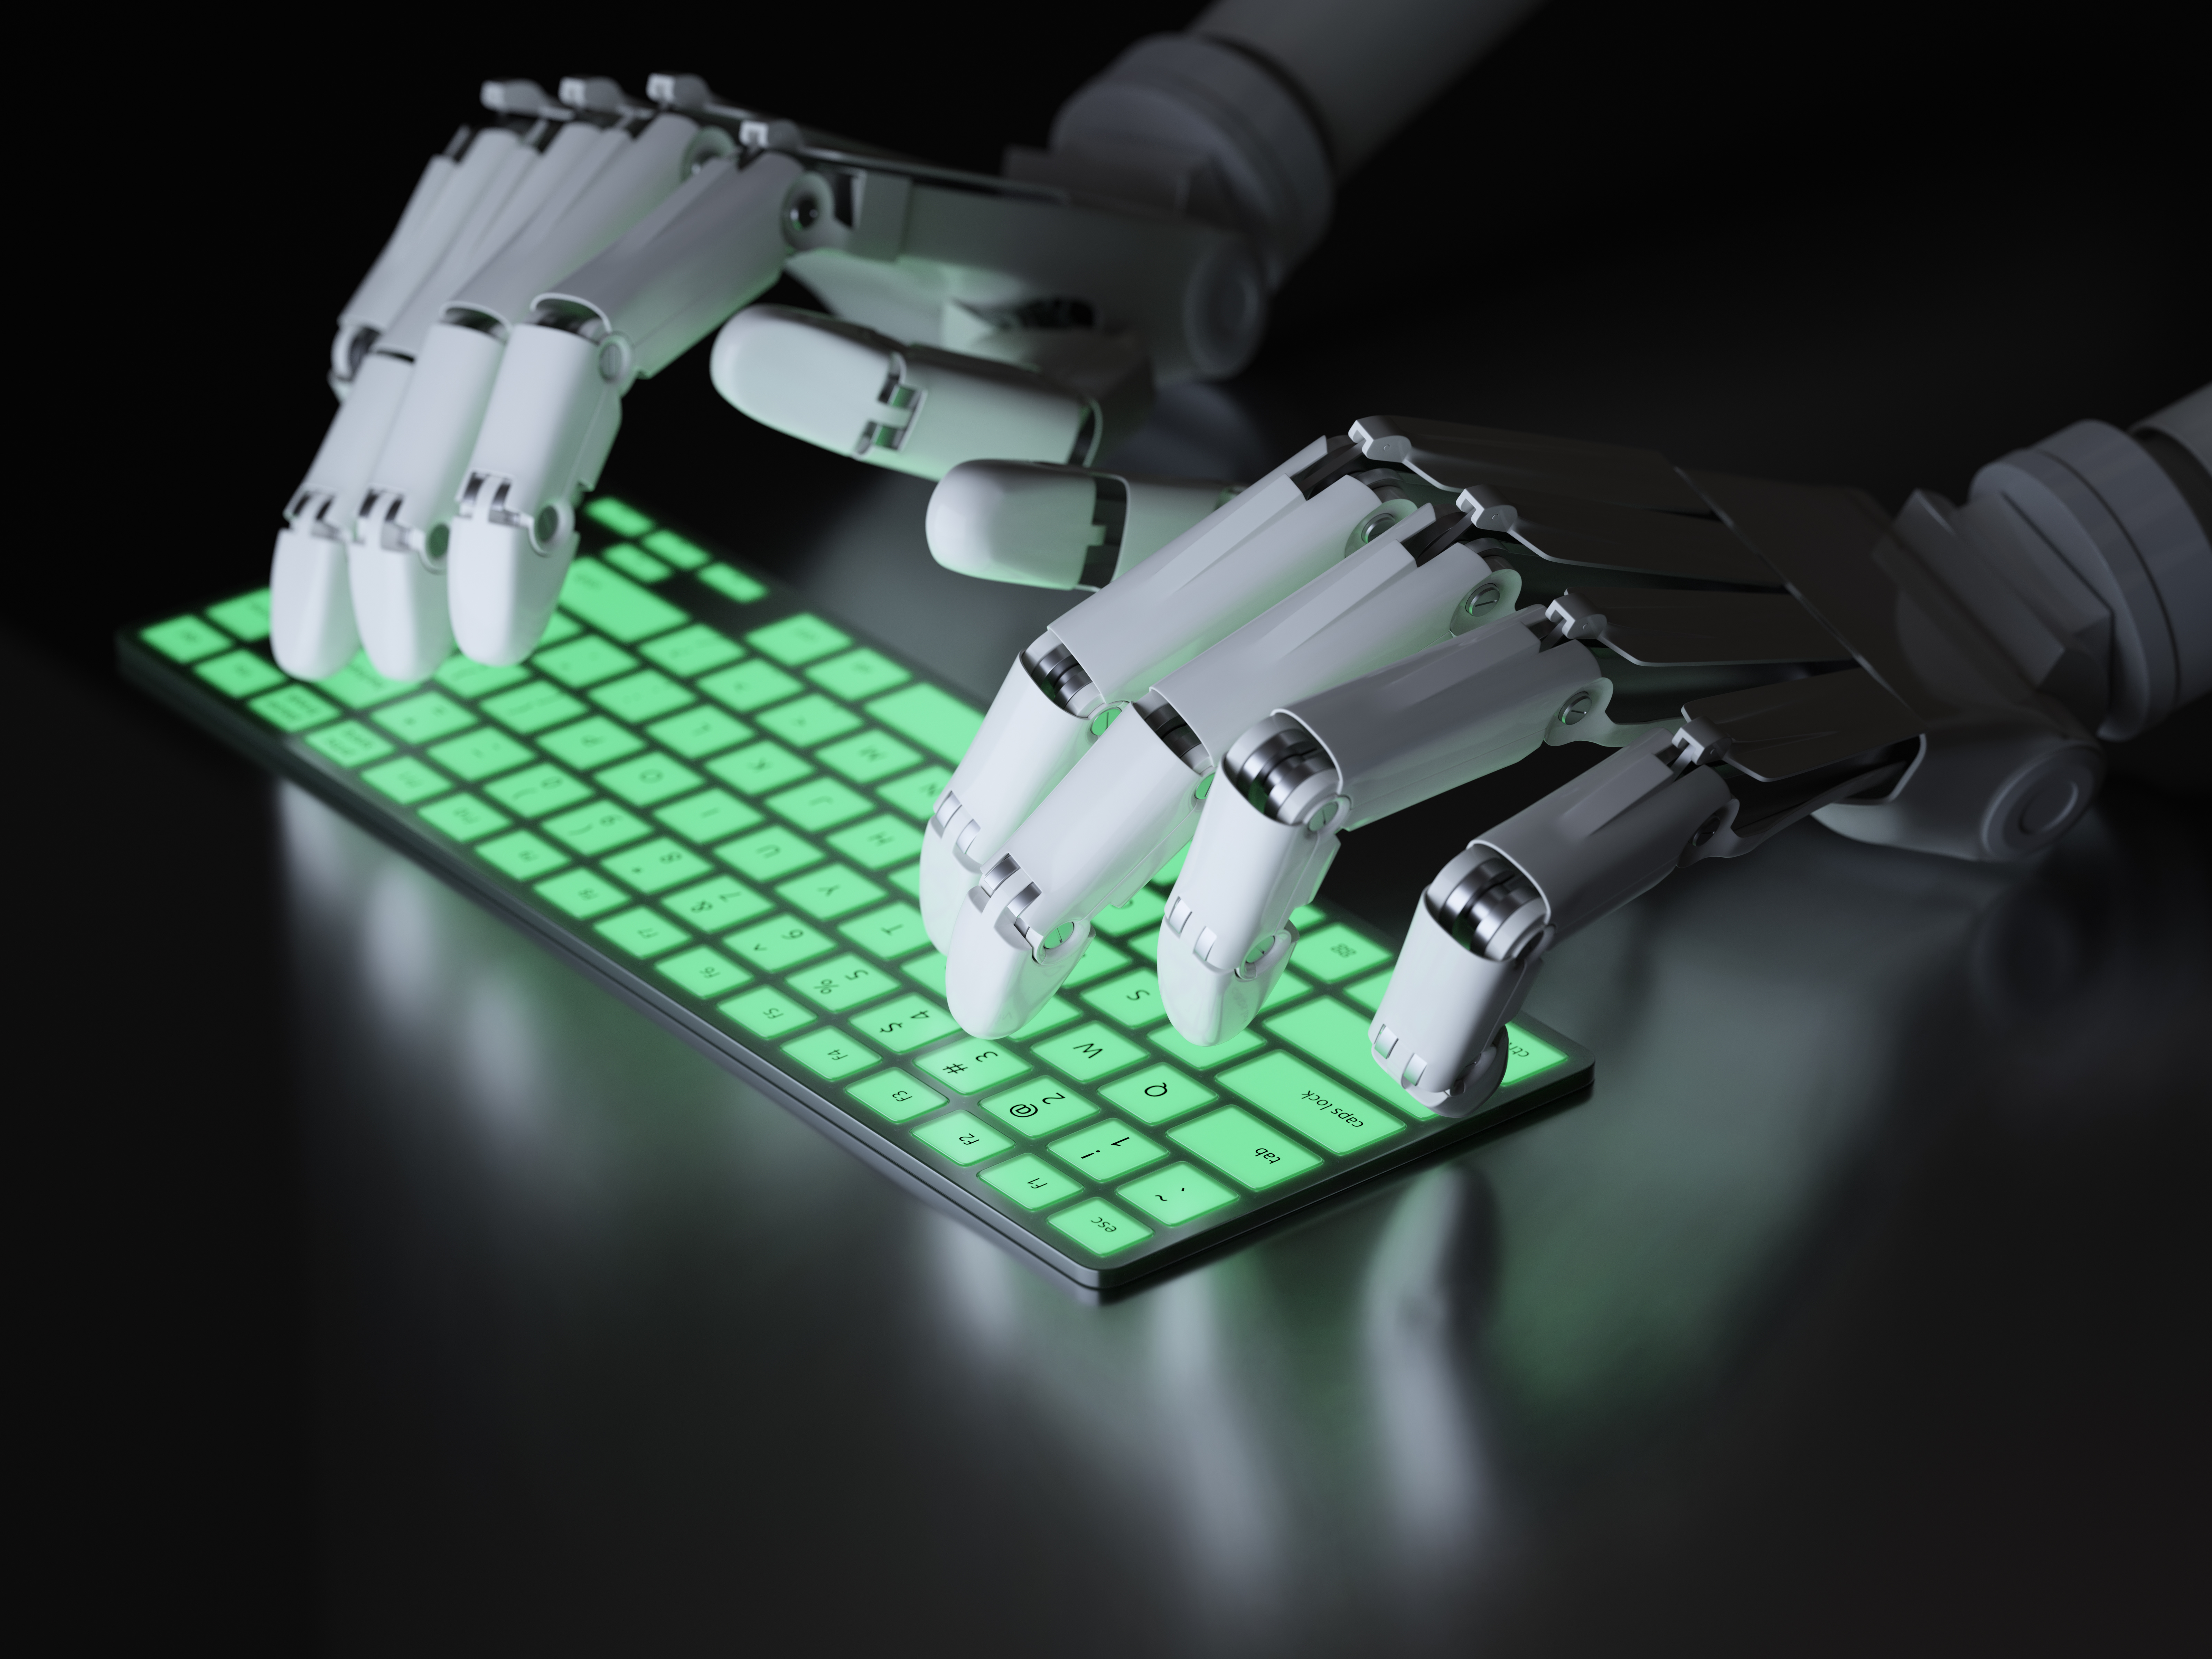 Is that robot telling other robots what parts to pull in an Amazon warehouse? Or is it searching databases to develop your profile before picking which call center operator to connect you to? Image courtesy of Adobe Stock.